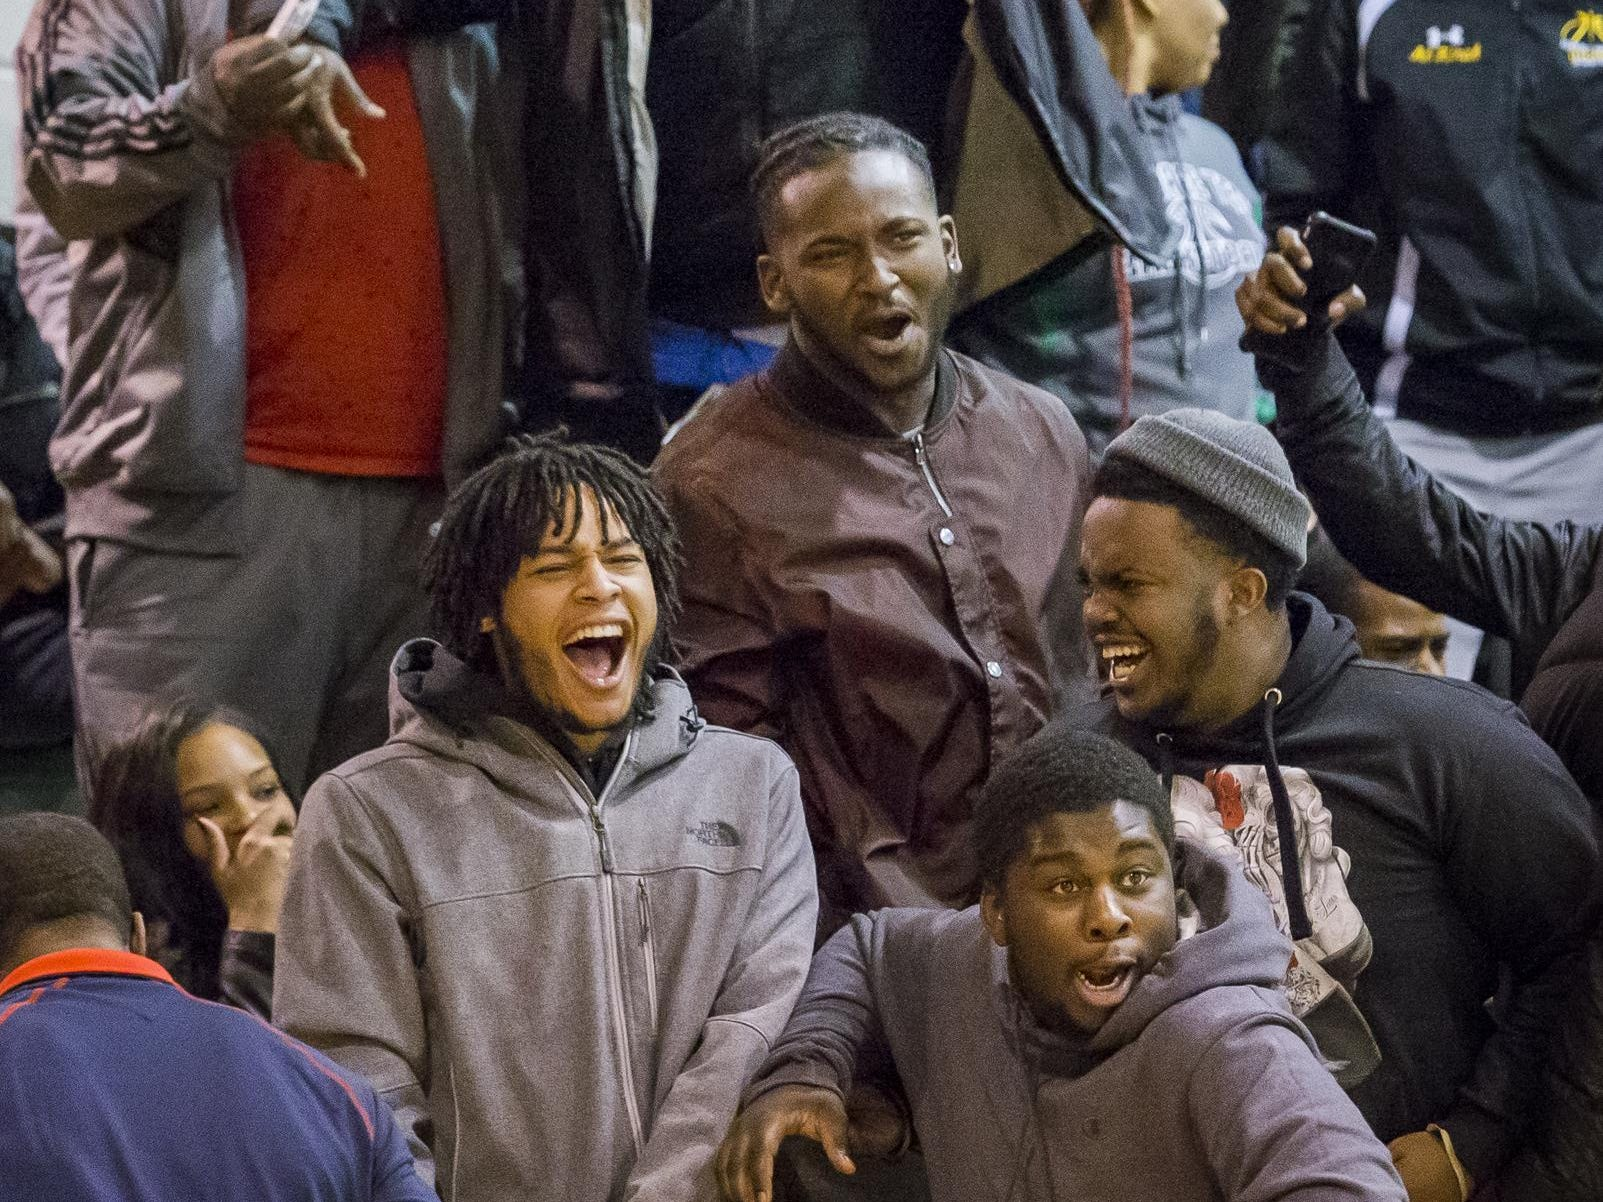 Mount Pleasant fans celebrate a dunk by Mount Pleasant's KVonn Cramer in the first half of Mount Pleasant's 79-60 win over Appoquinimink High School at Mount Pleasant High School in Wilmington on Tuesday evening.